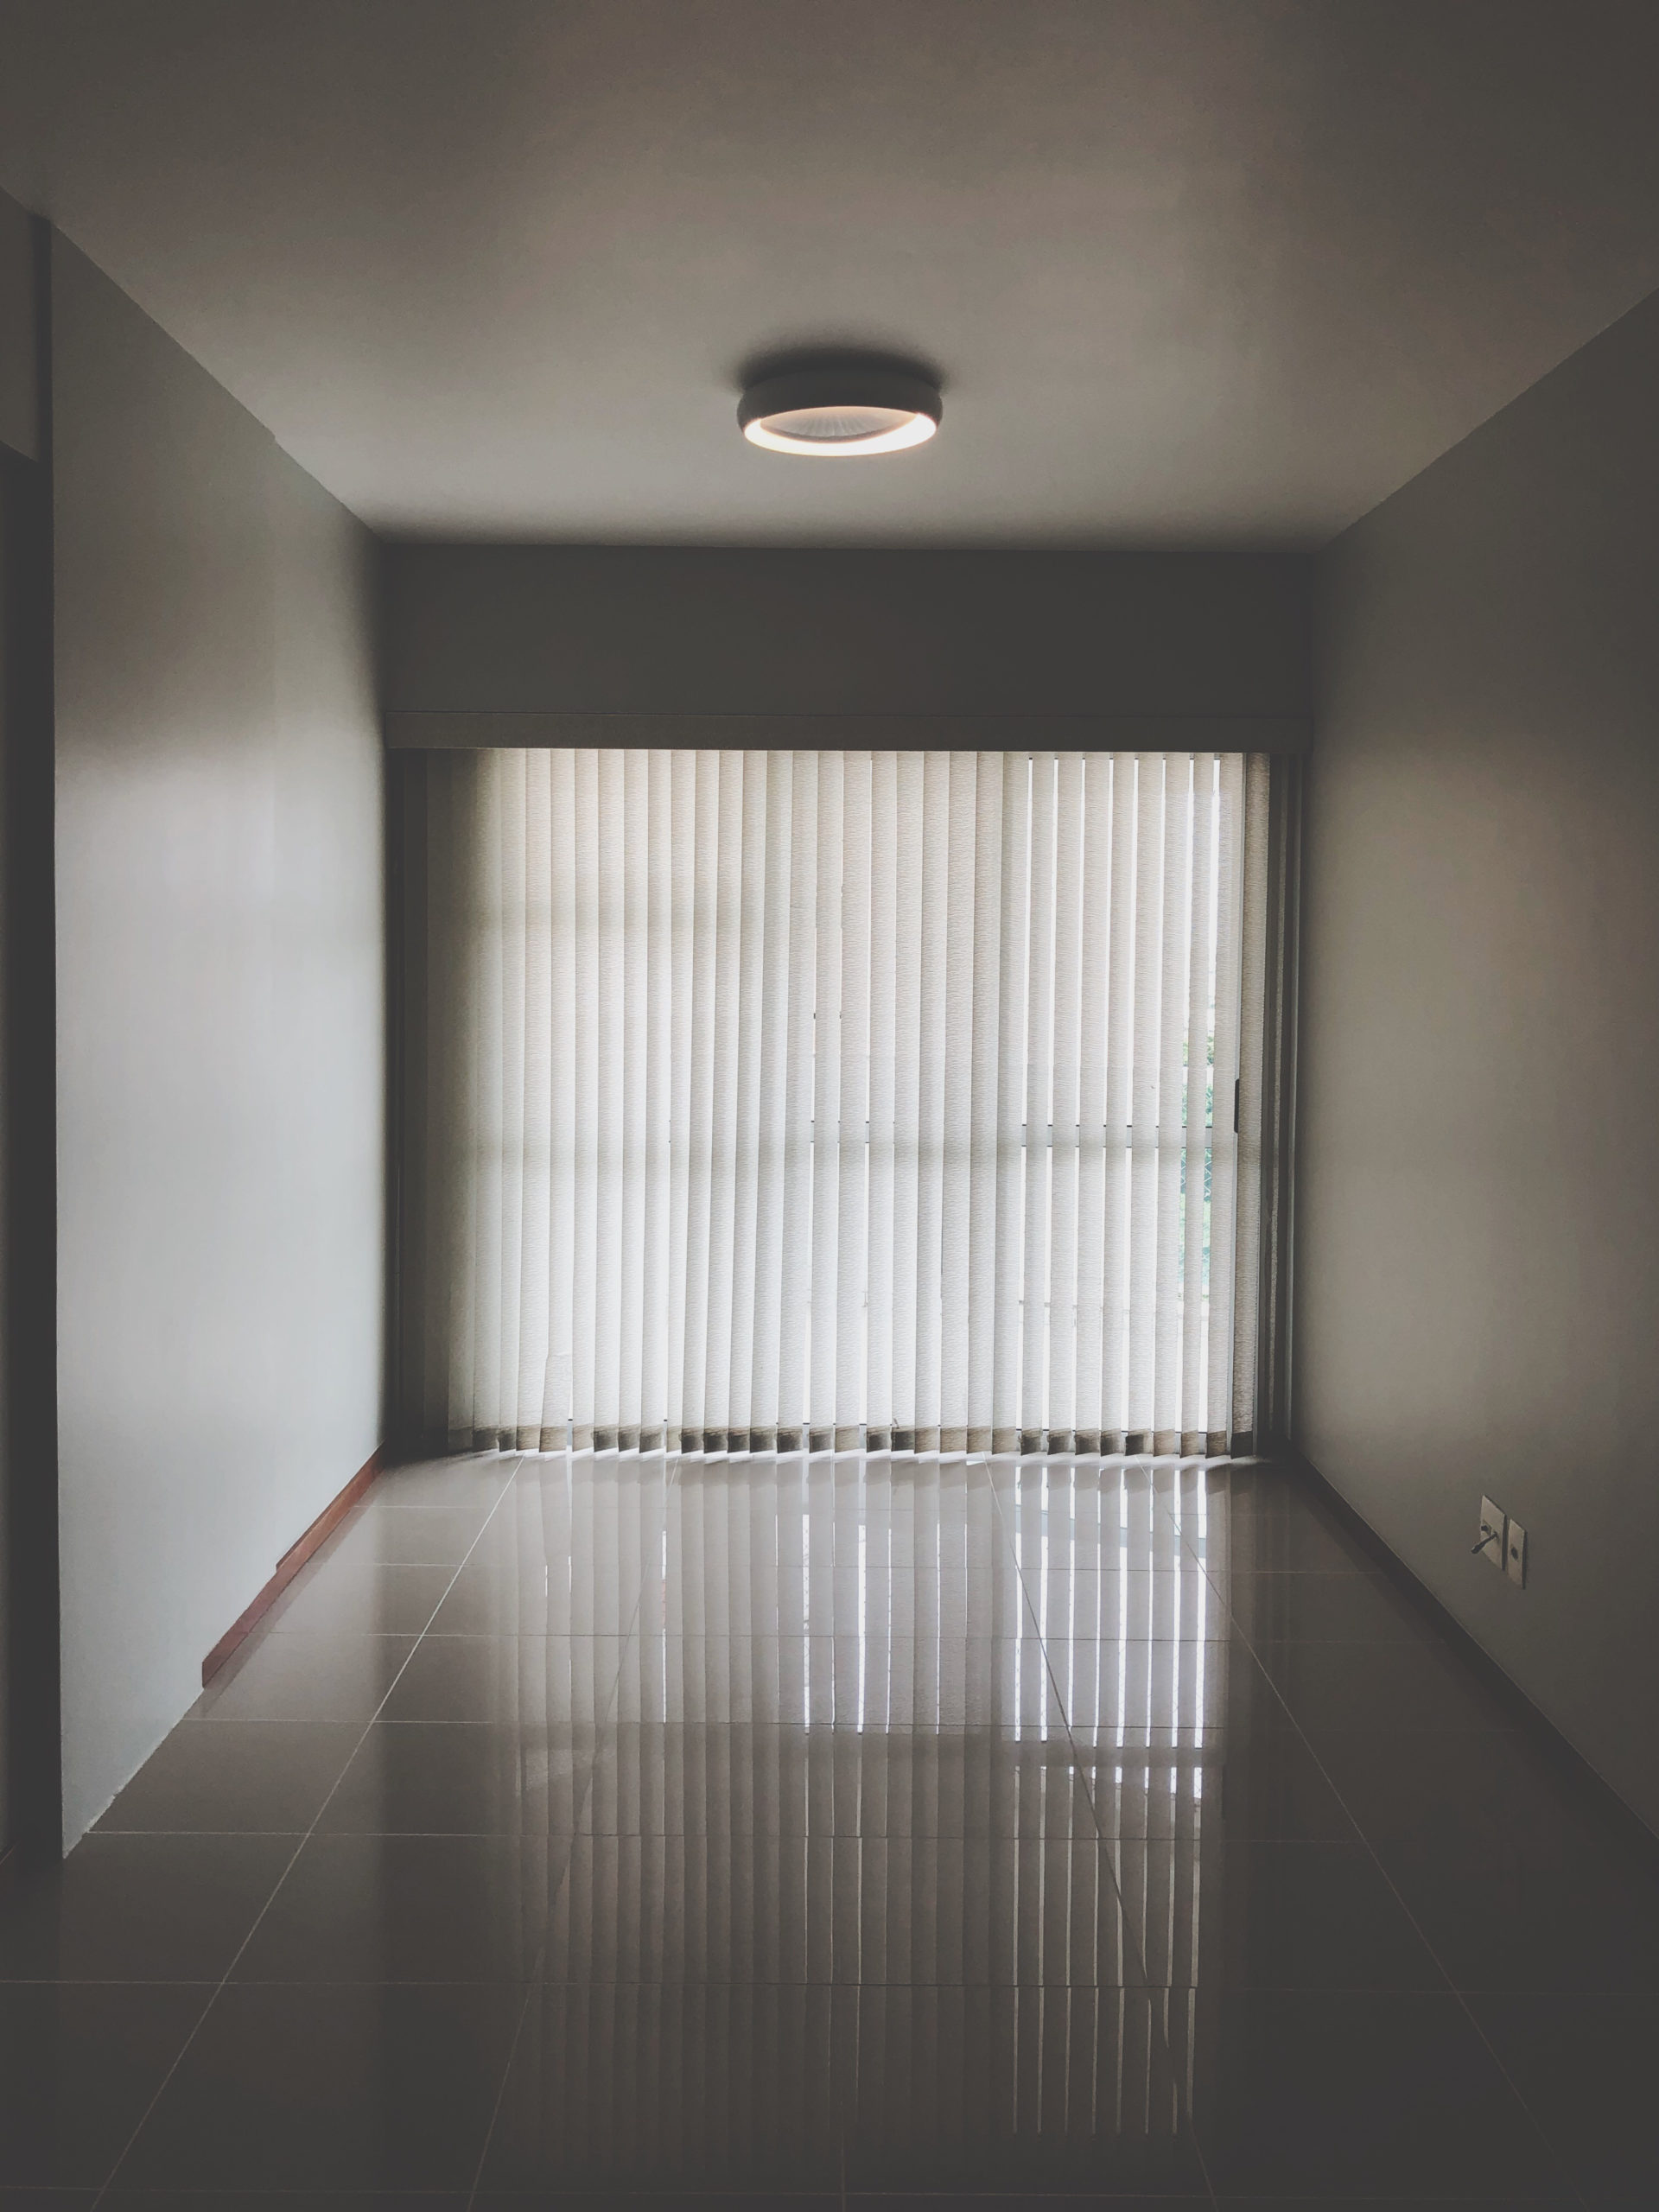 https://jsmelevice.cz/wp-content/uploads/2020/03/Canva-Empty-Room-With-Closed-Window-Curtains-scaled.jpg